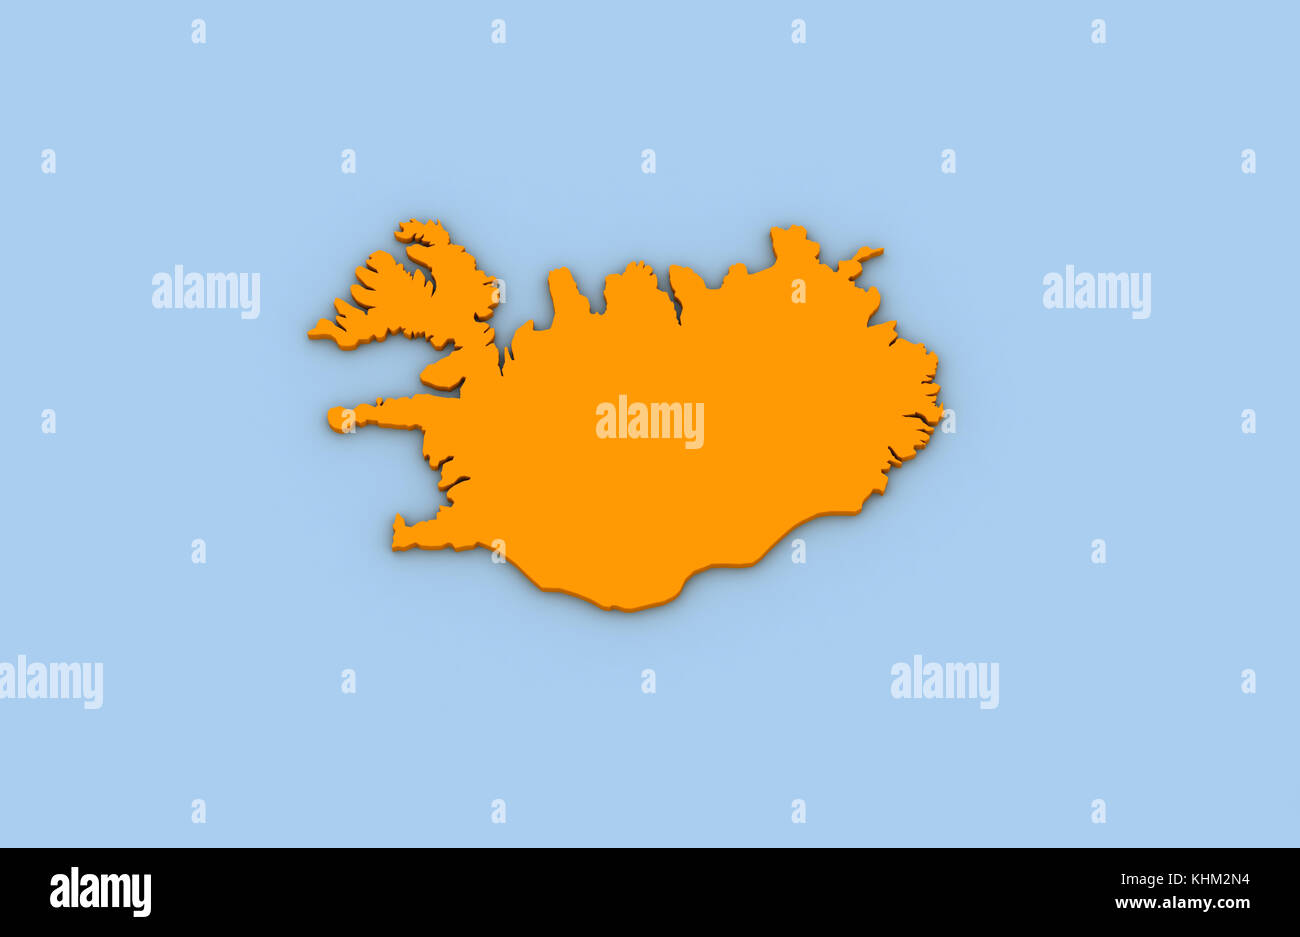 Map of iceland stock photos map of iceland stock images alamy 3d render of abstract map of iceland highlighted in orange color stock image gumiabroncs Gallery